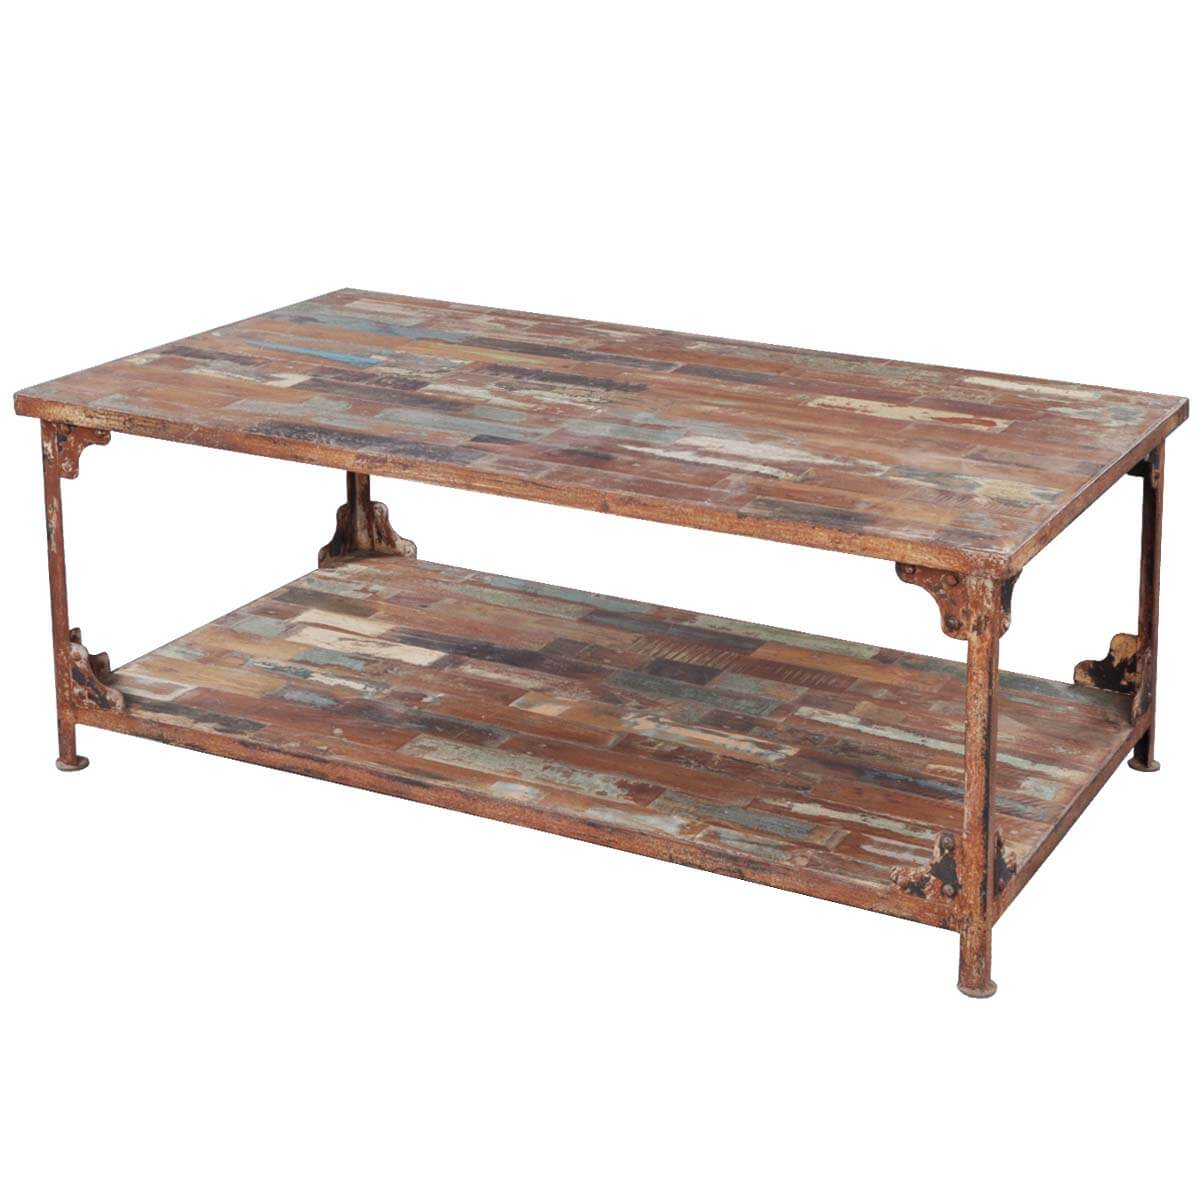 Distressed reclaimed wood industrial wrought iron rustic coffee table Recycled wood coffee table